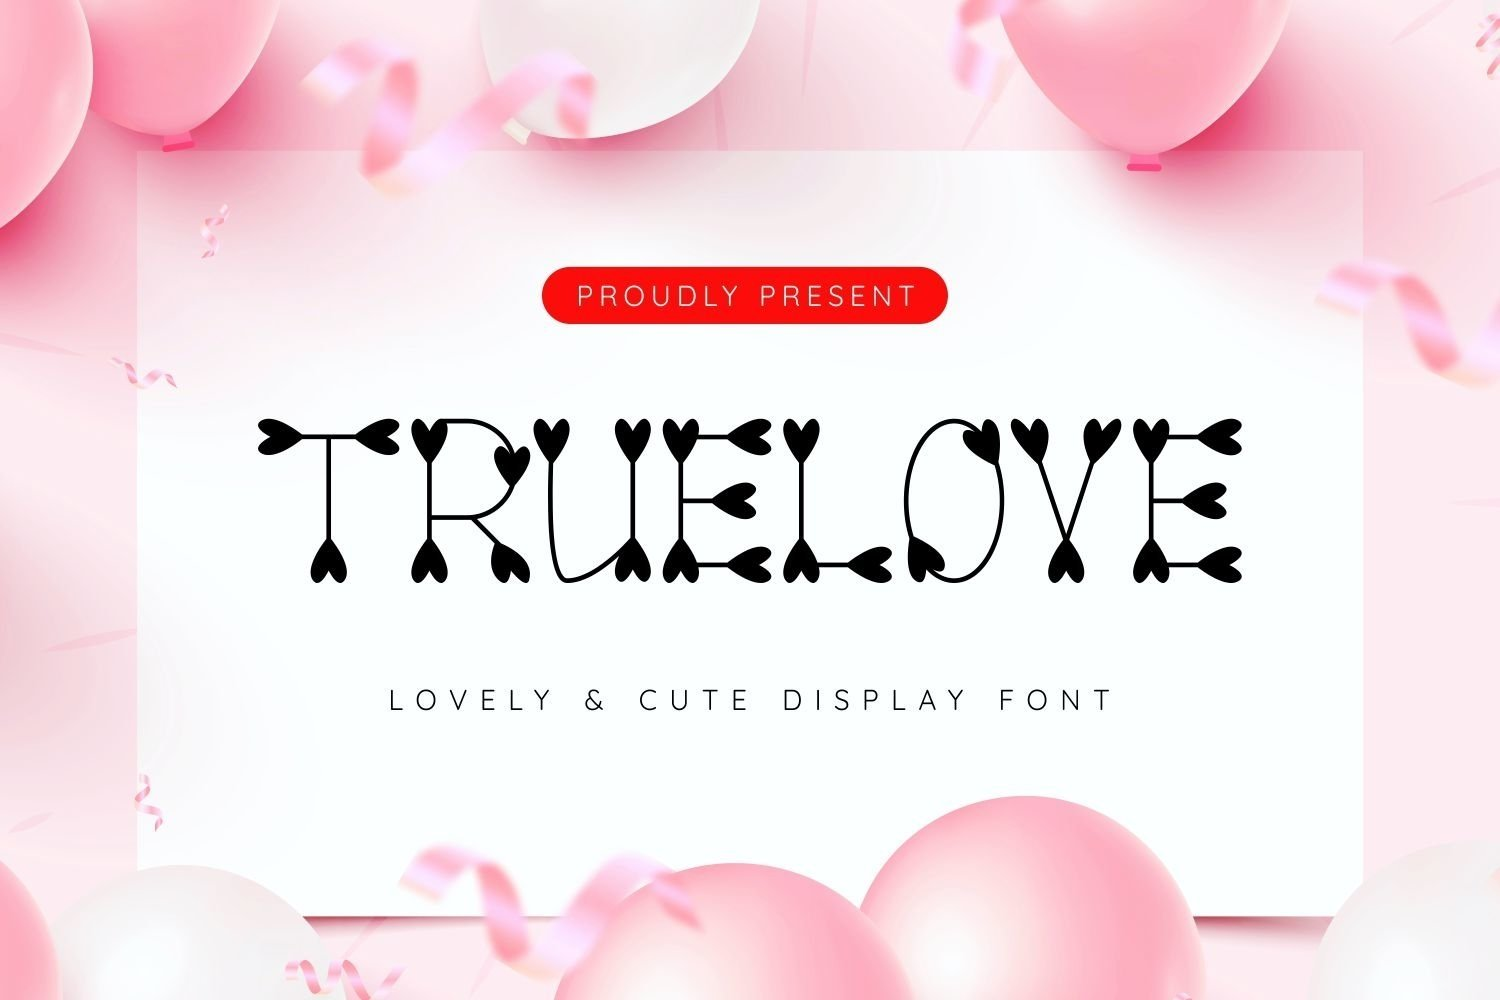 Web Font Truelove - Cute and Lovely Display Typeface example image 1